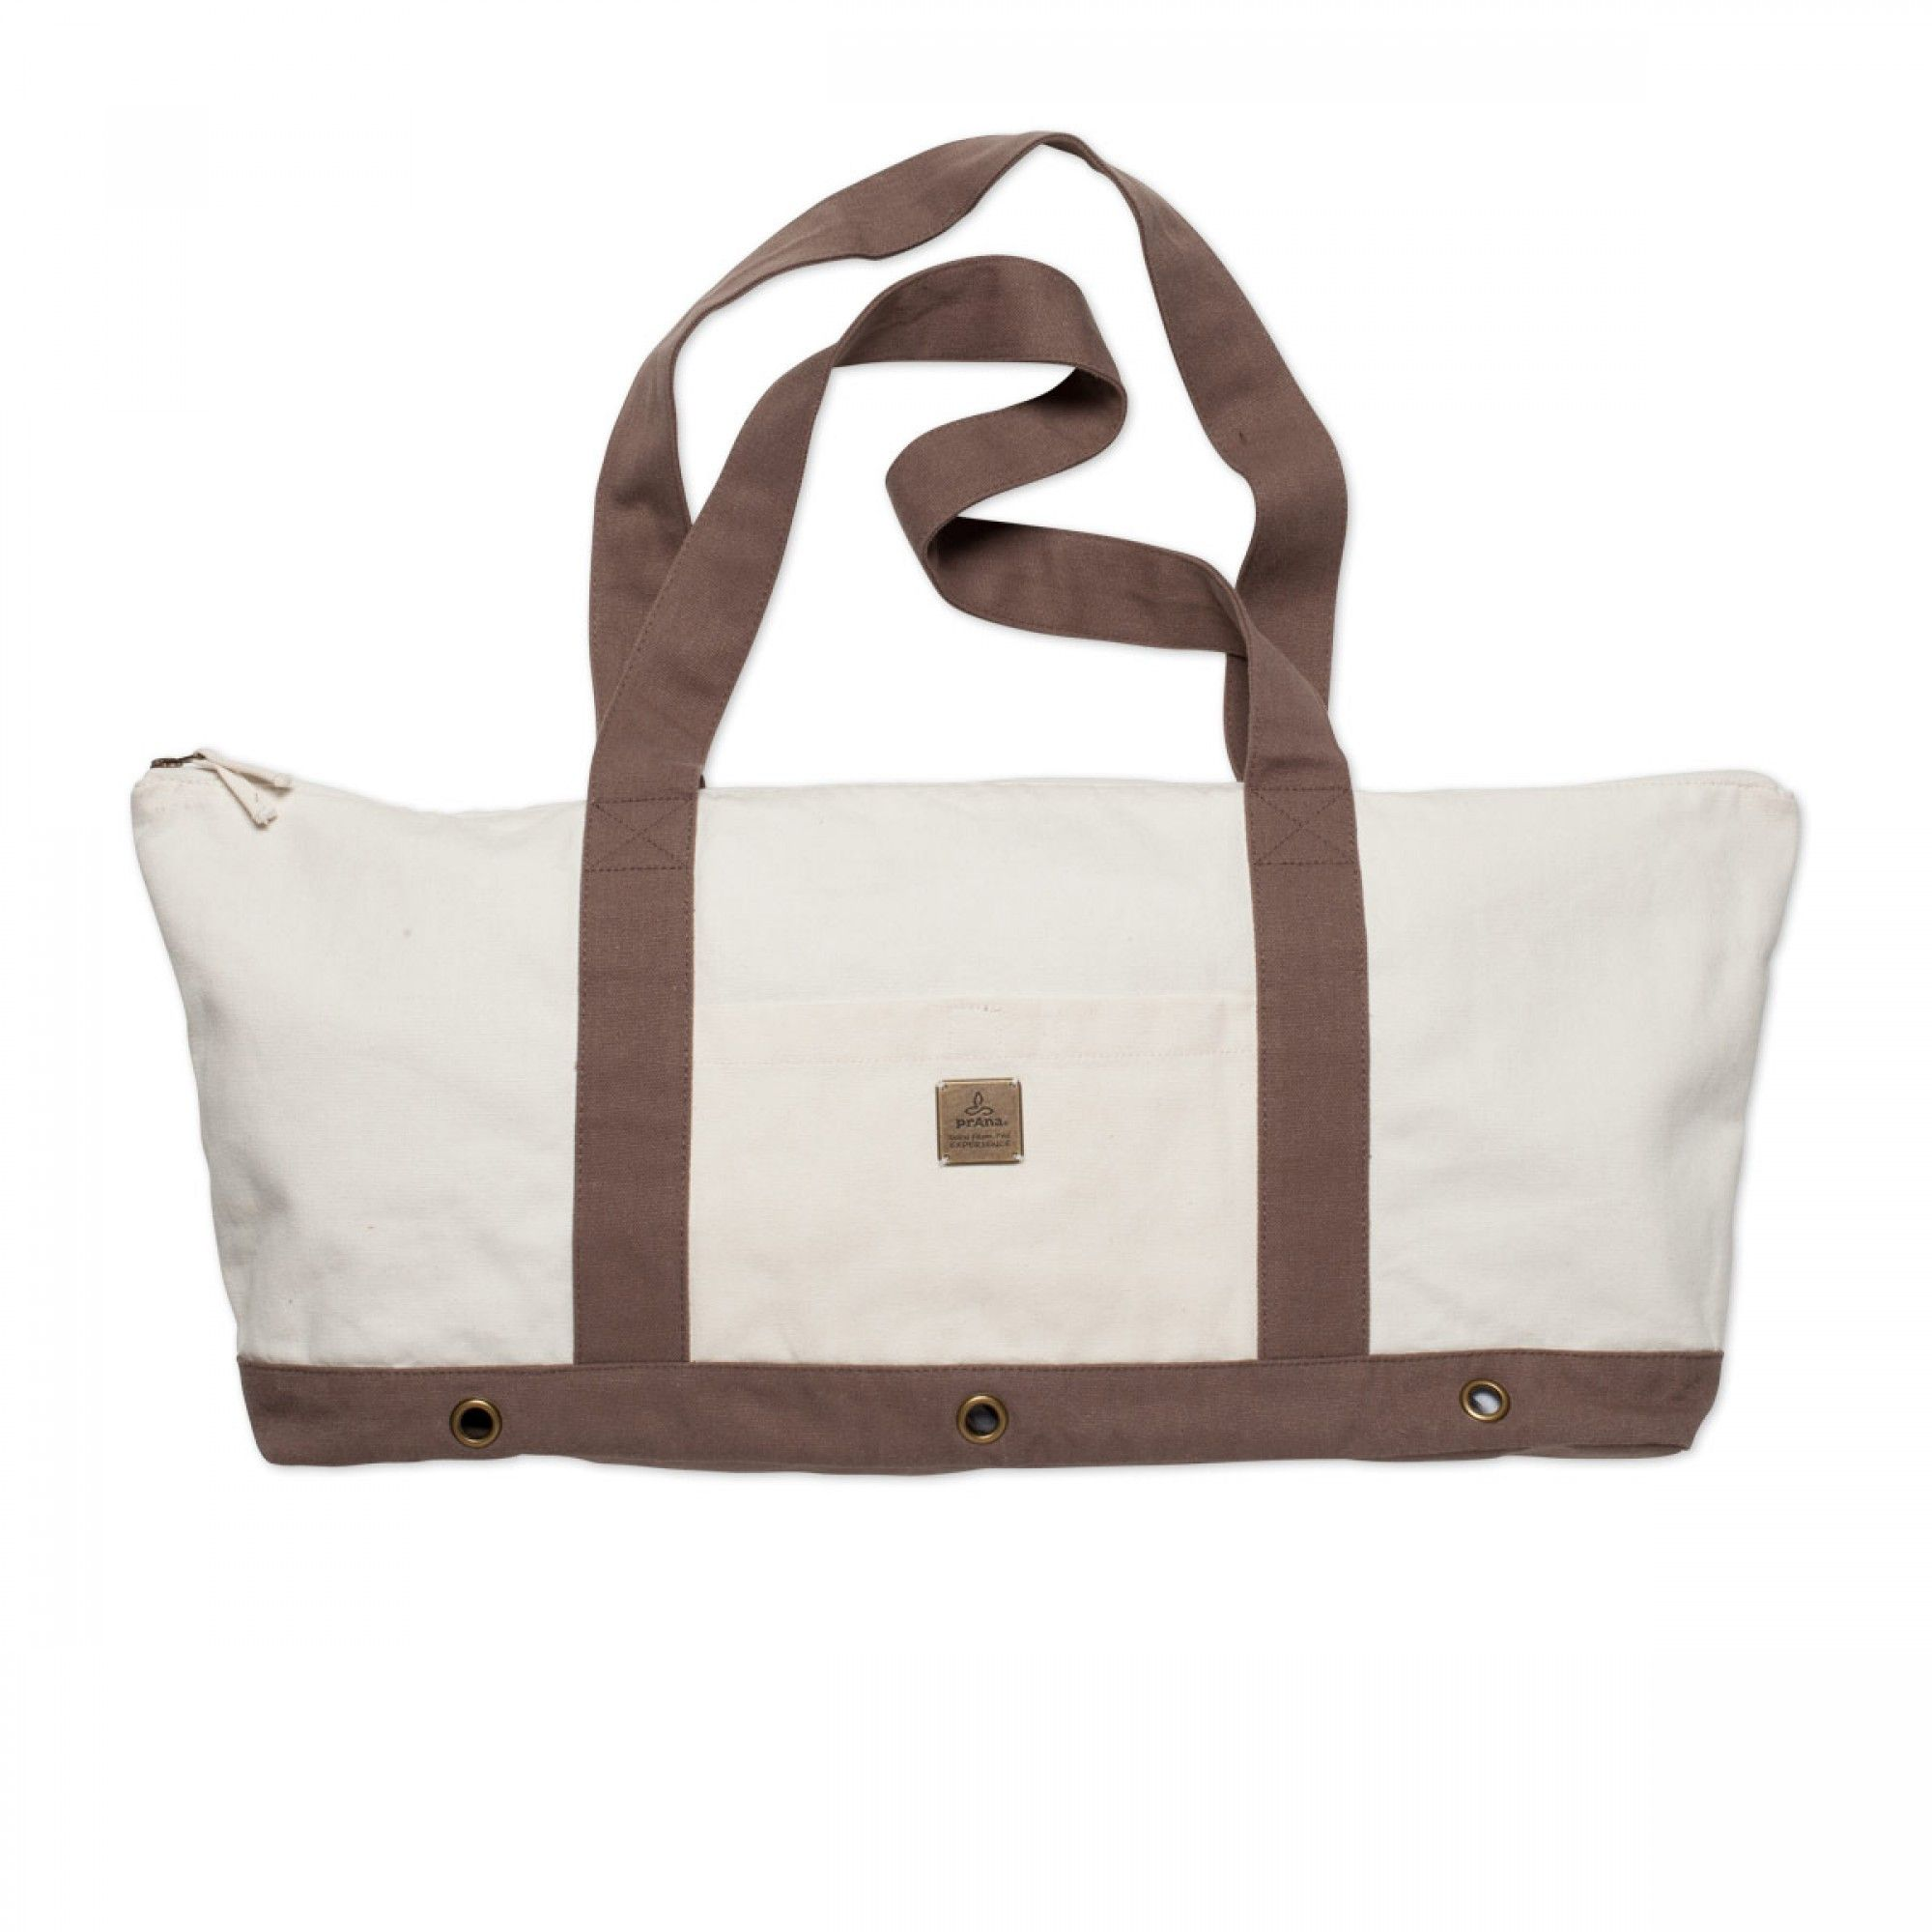 The June Yoga Tote is a staple in any sportychic capsule